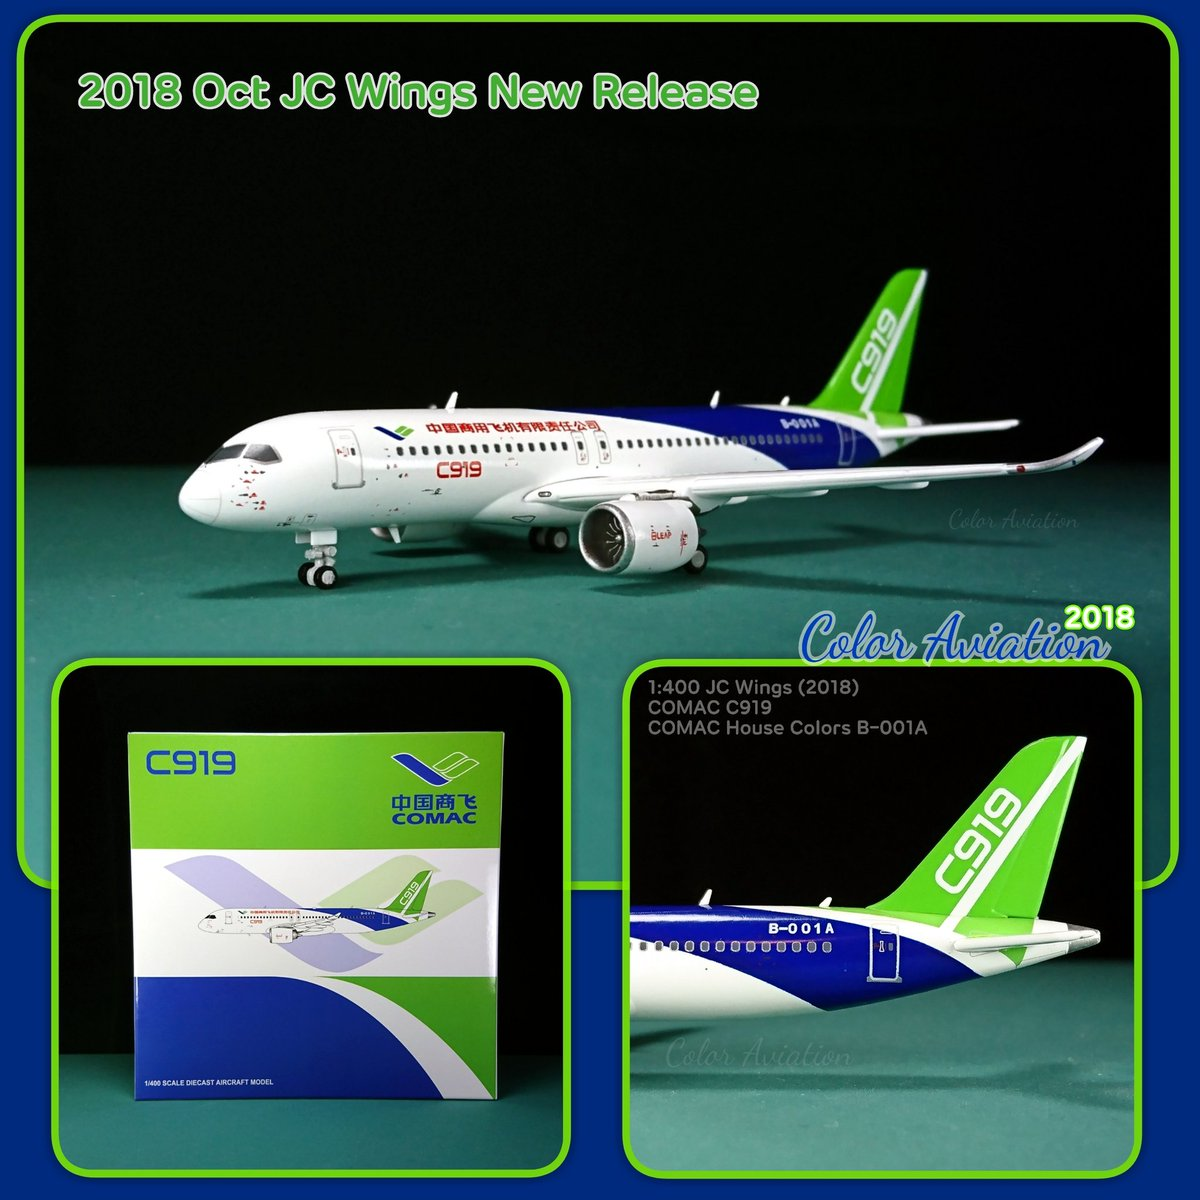 JC Wings 1:400 scale diecast model Comac C919 Commercial Airliner B-001A